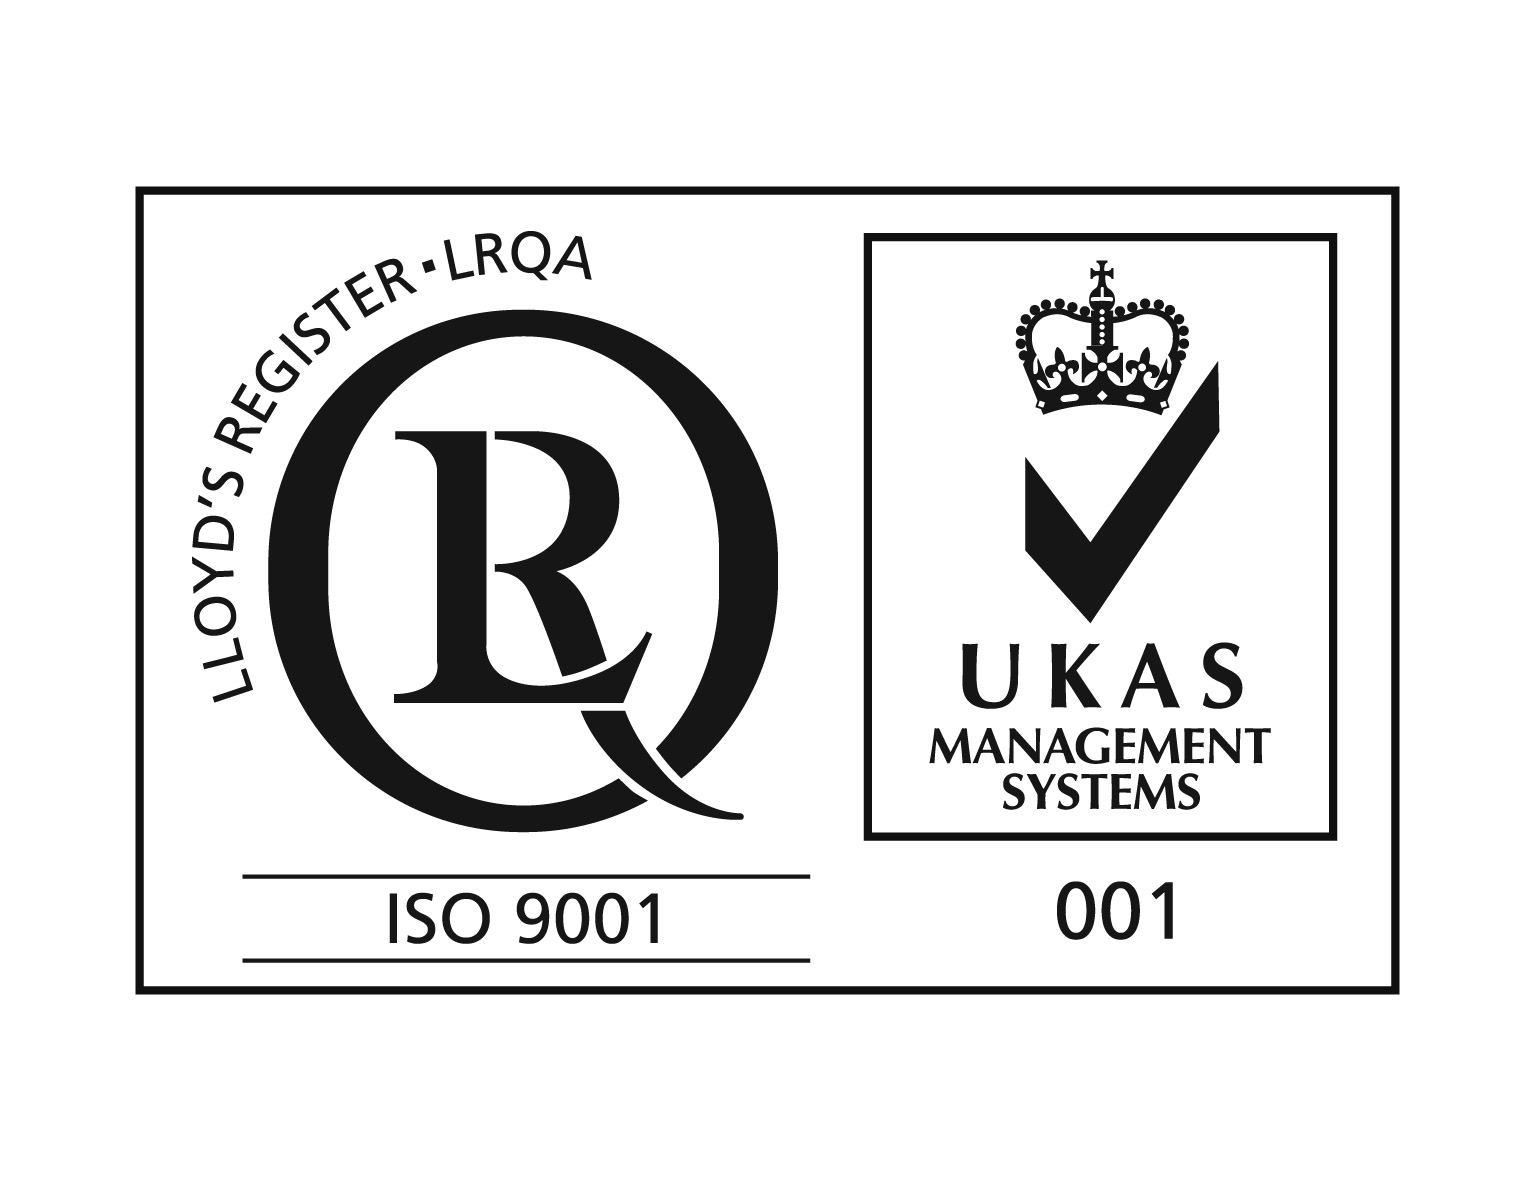 New ISO9001 and UKAS